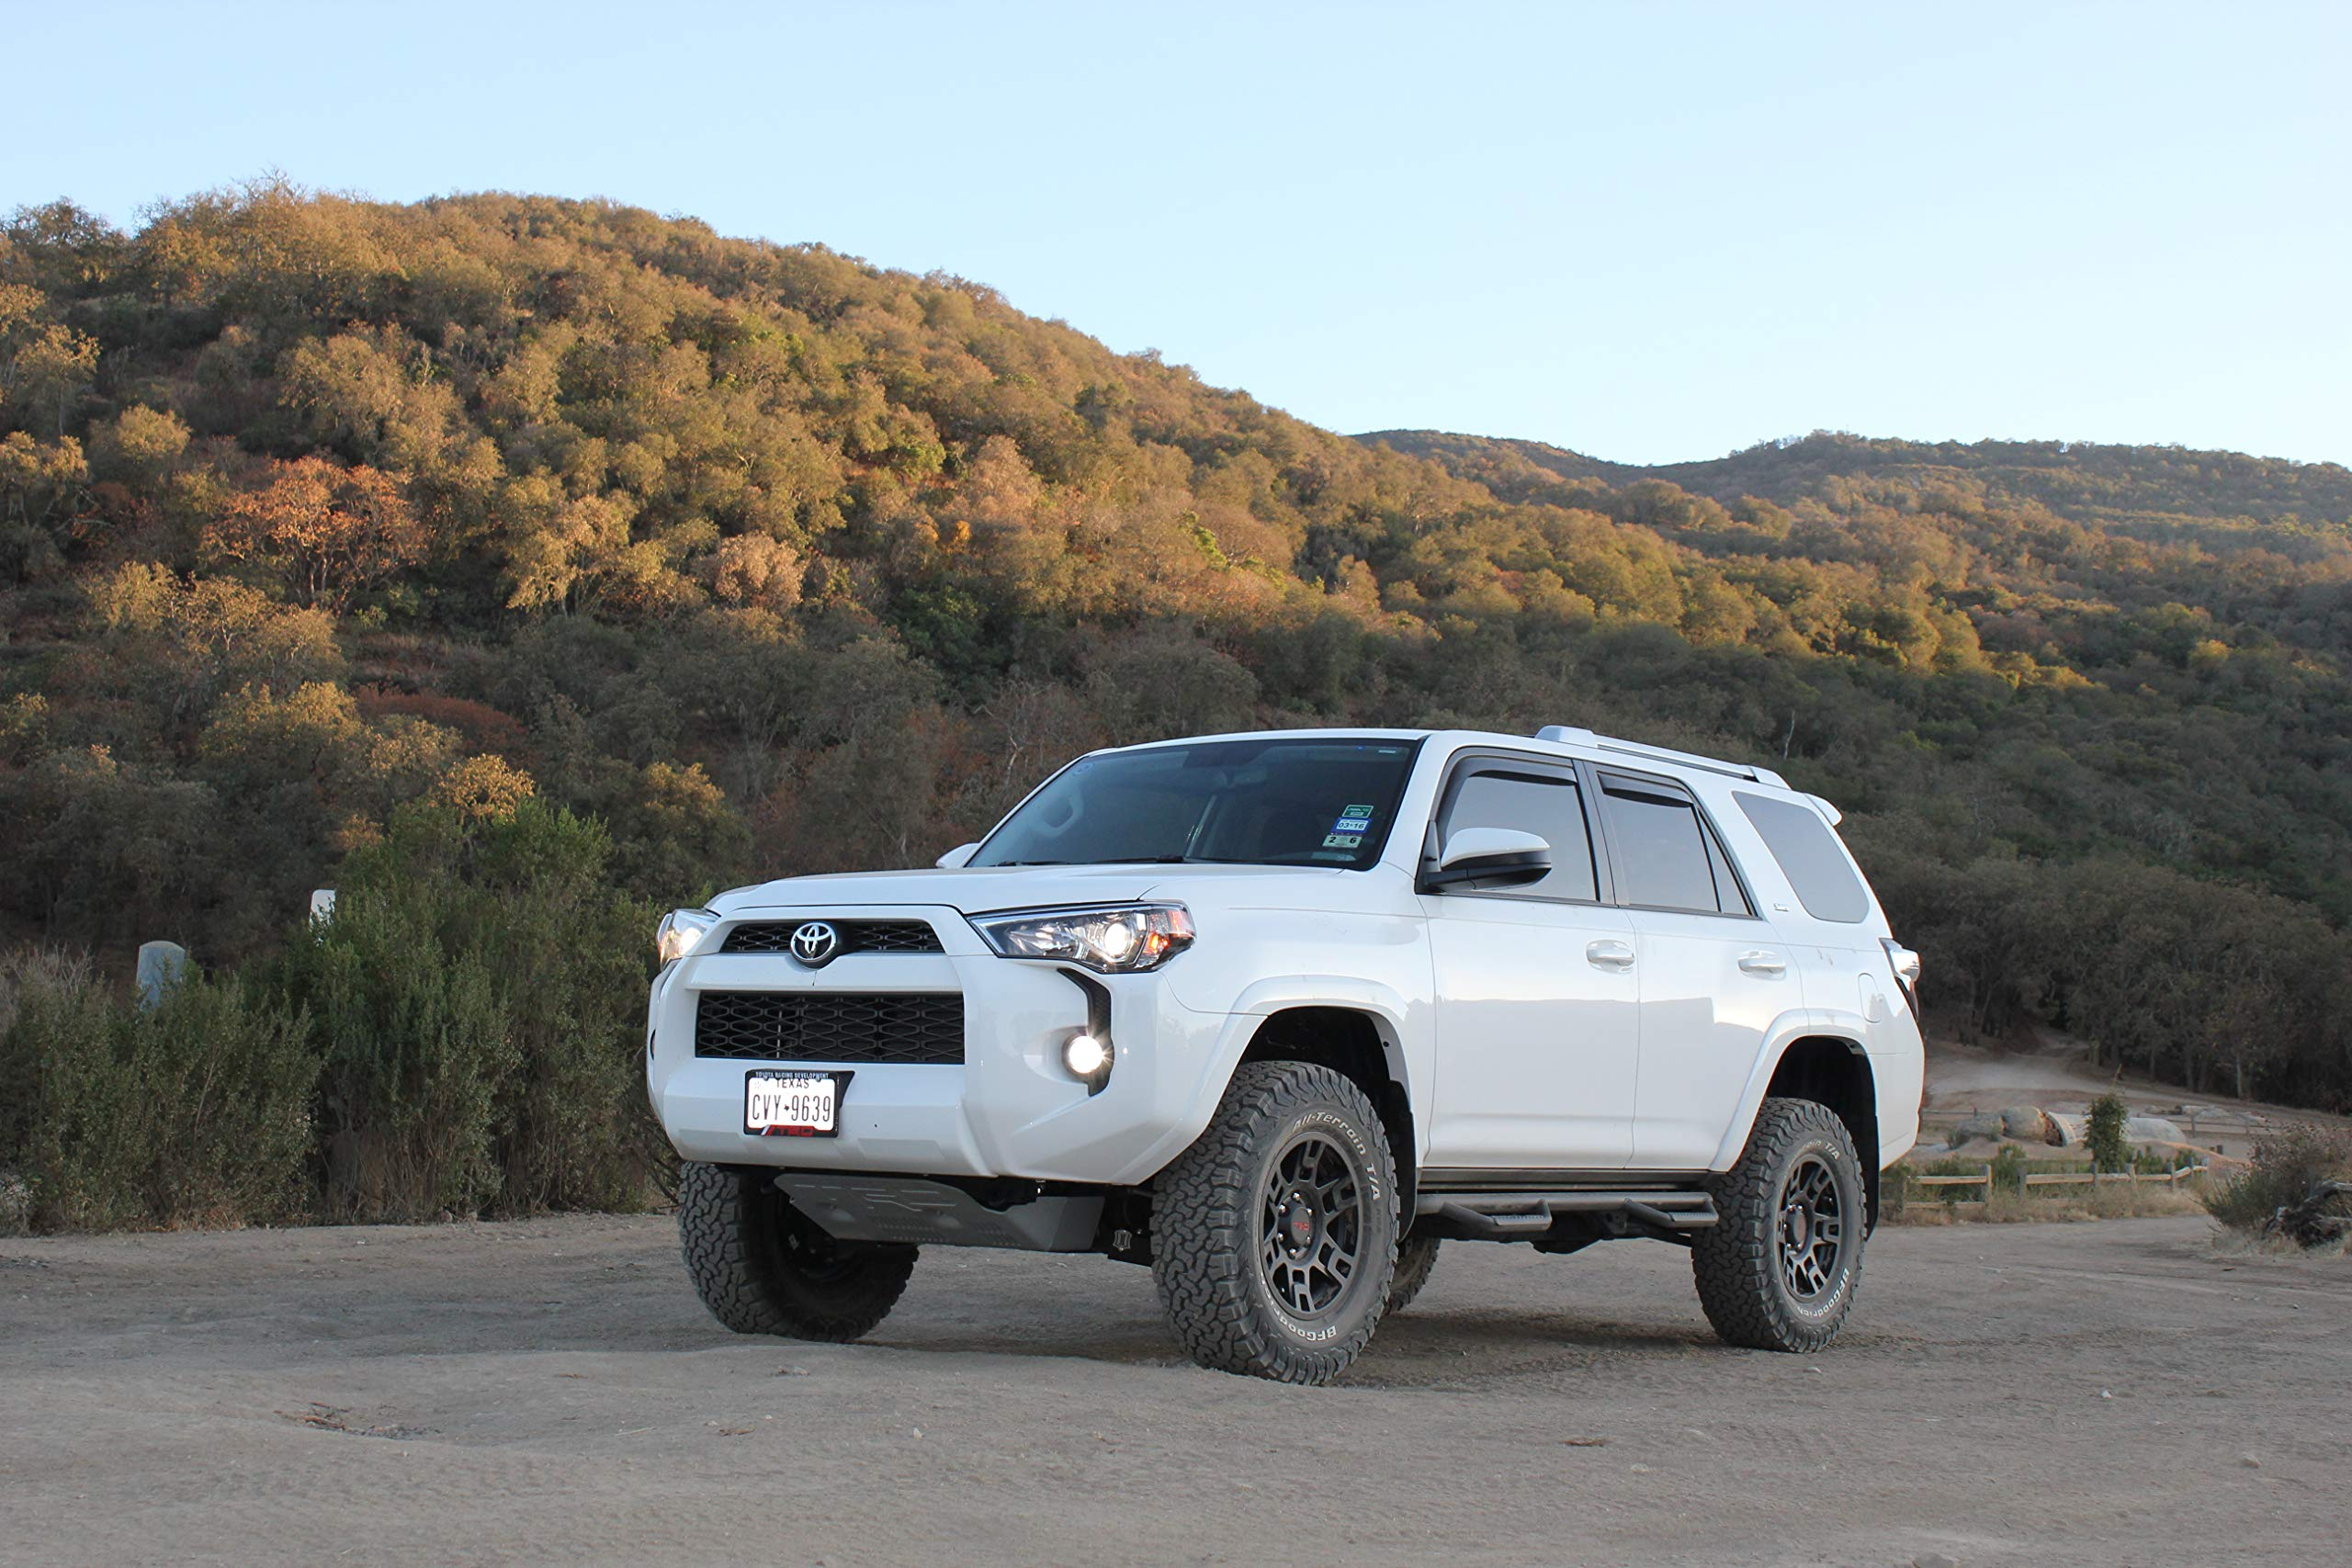 DOES NOT FIT LIMITED | Gloss Black T1464R-GB fits Toyota 4 Runner Full Length N-FAB Nerf Step SUV  14-18